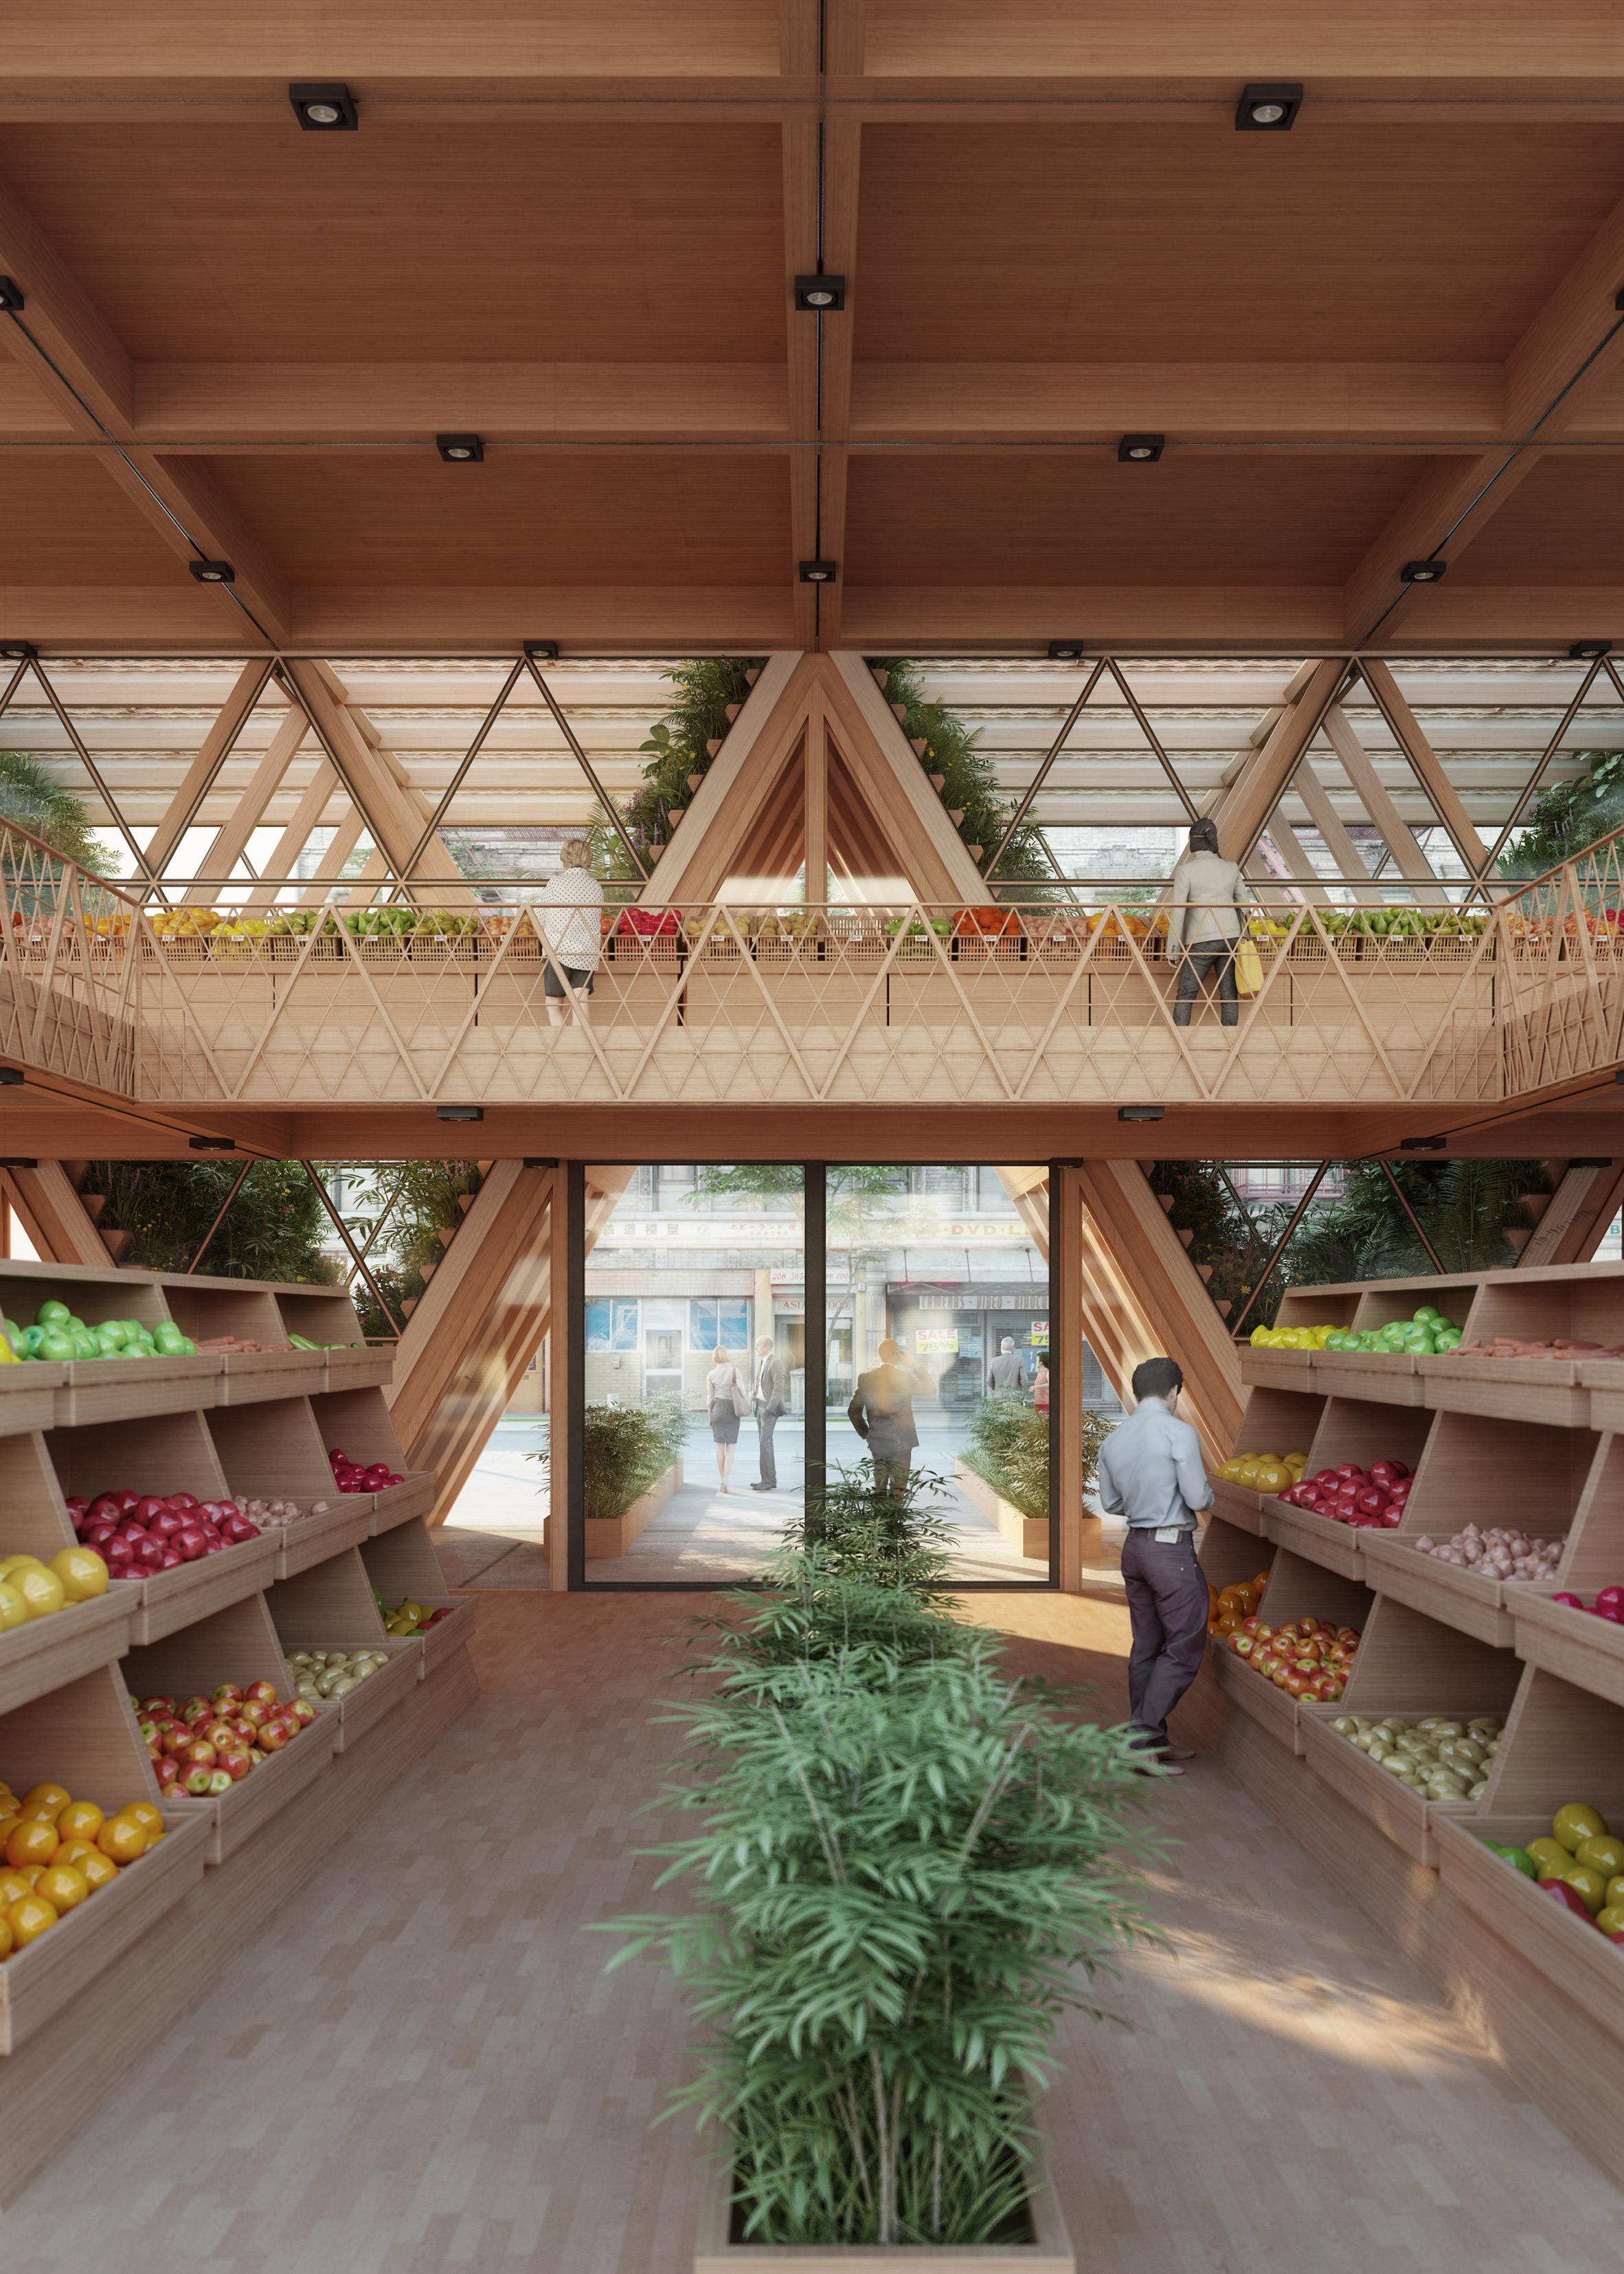 the-farmhouse-vertical-farm-apartments-precht-_dezeen_2364_col_17.jpg